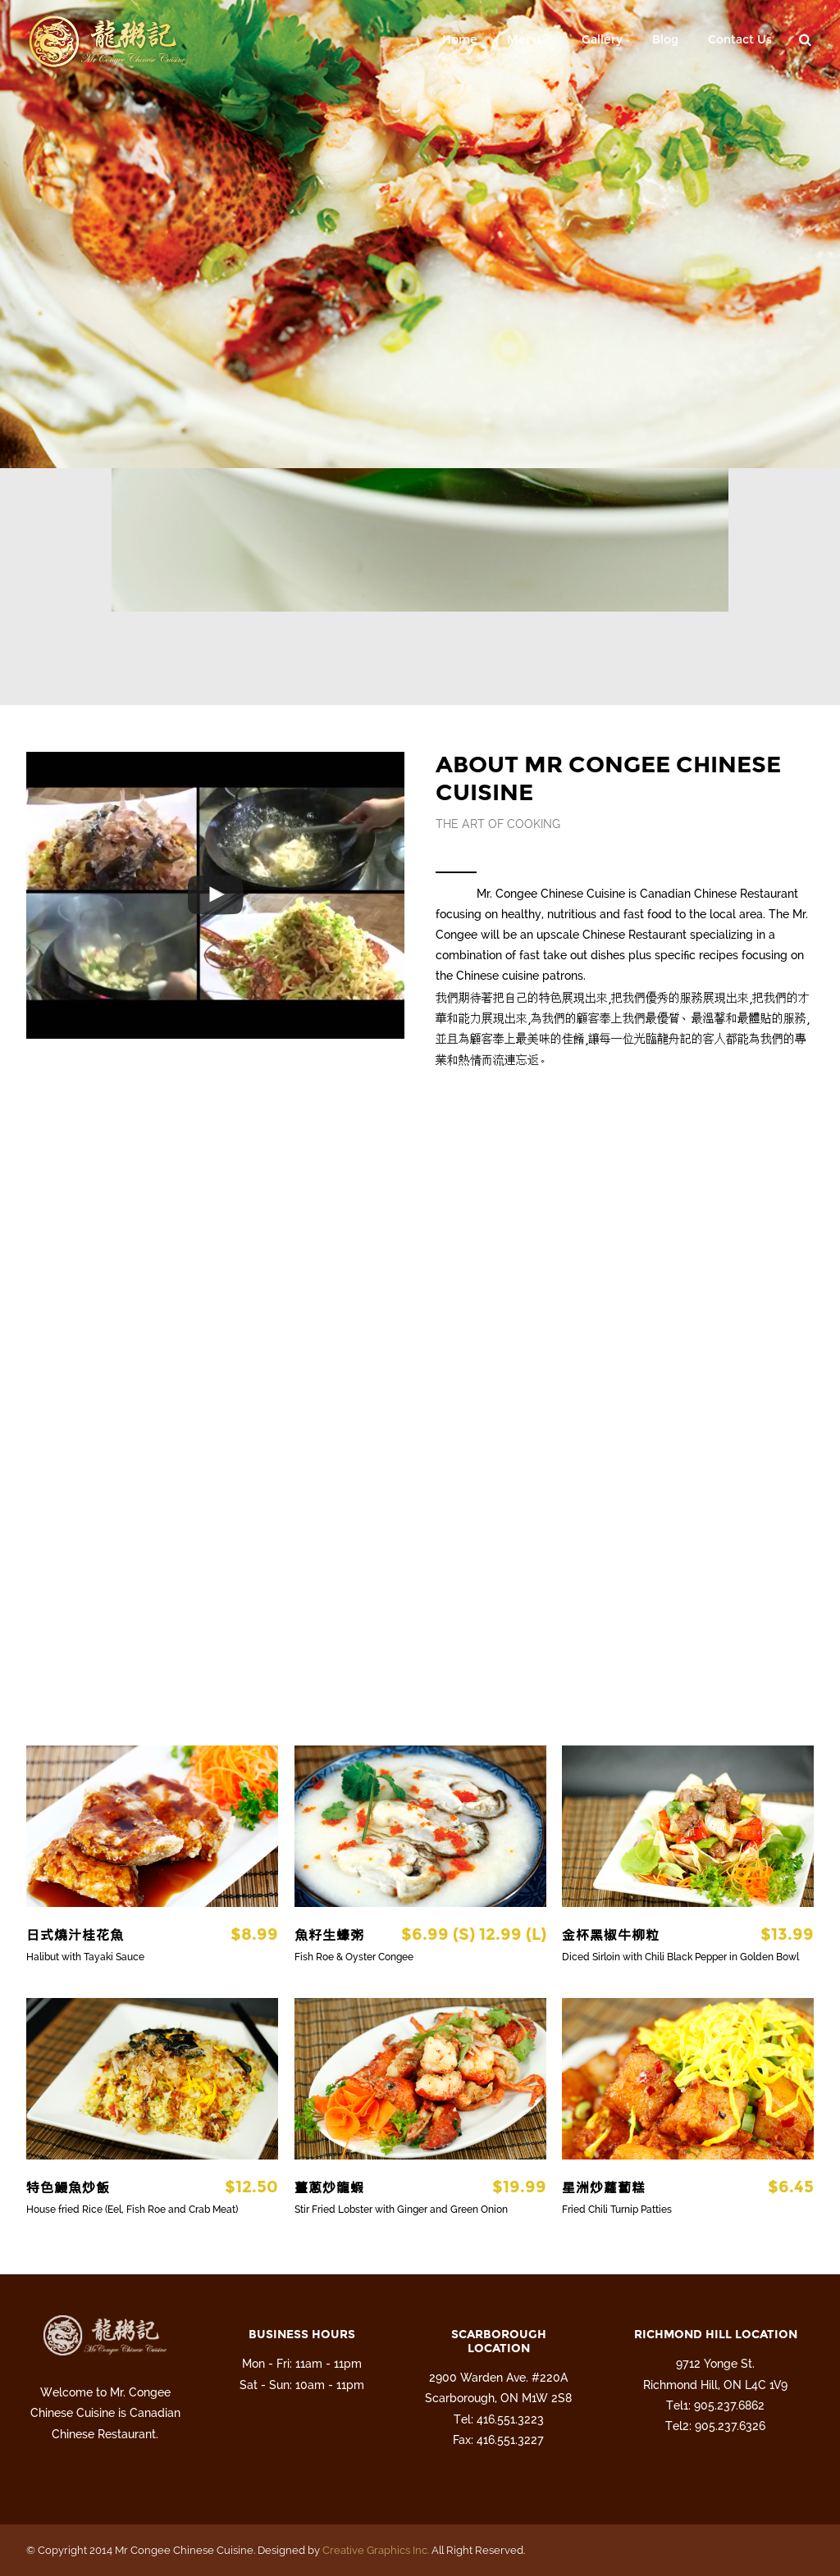 Mr congee chinese cuisine company profile revenue for Asian cuisine history